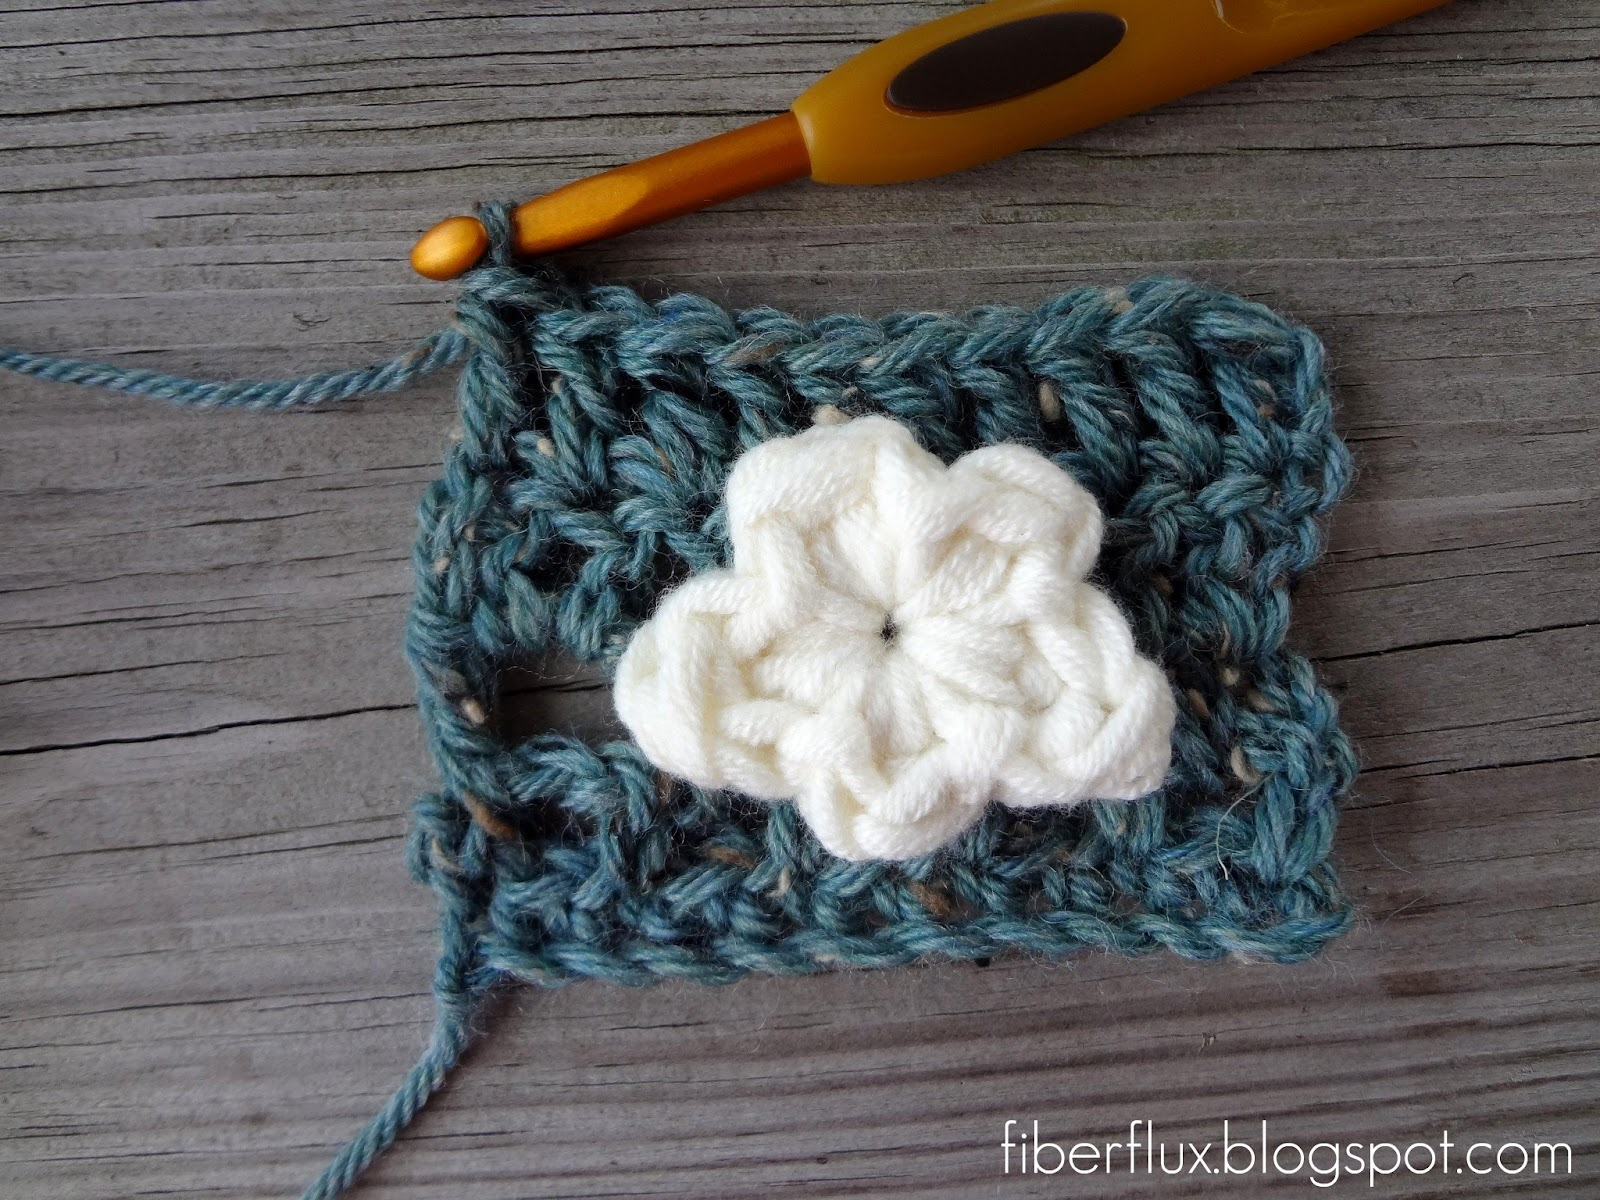 Fiber Flux: Free Crochet Pattern...One Round Cloud